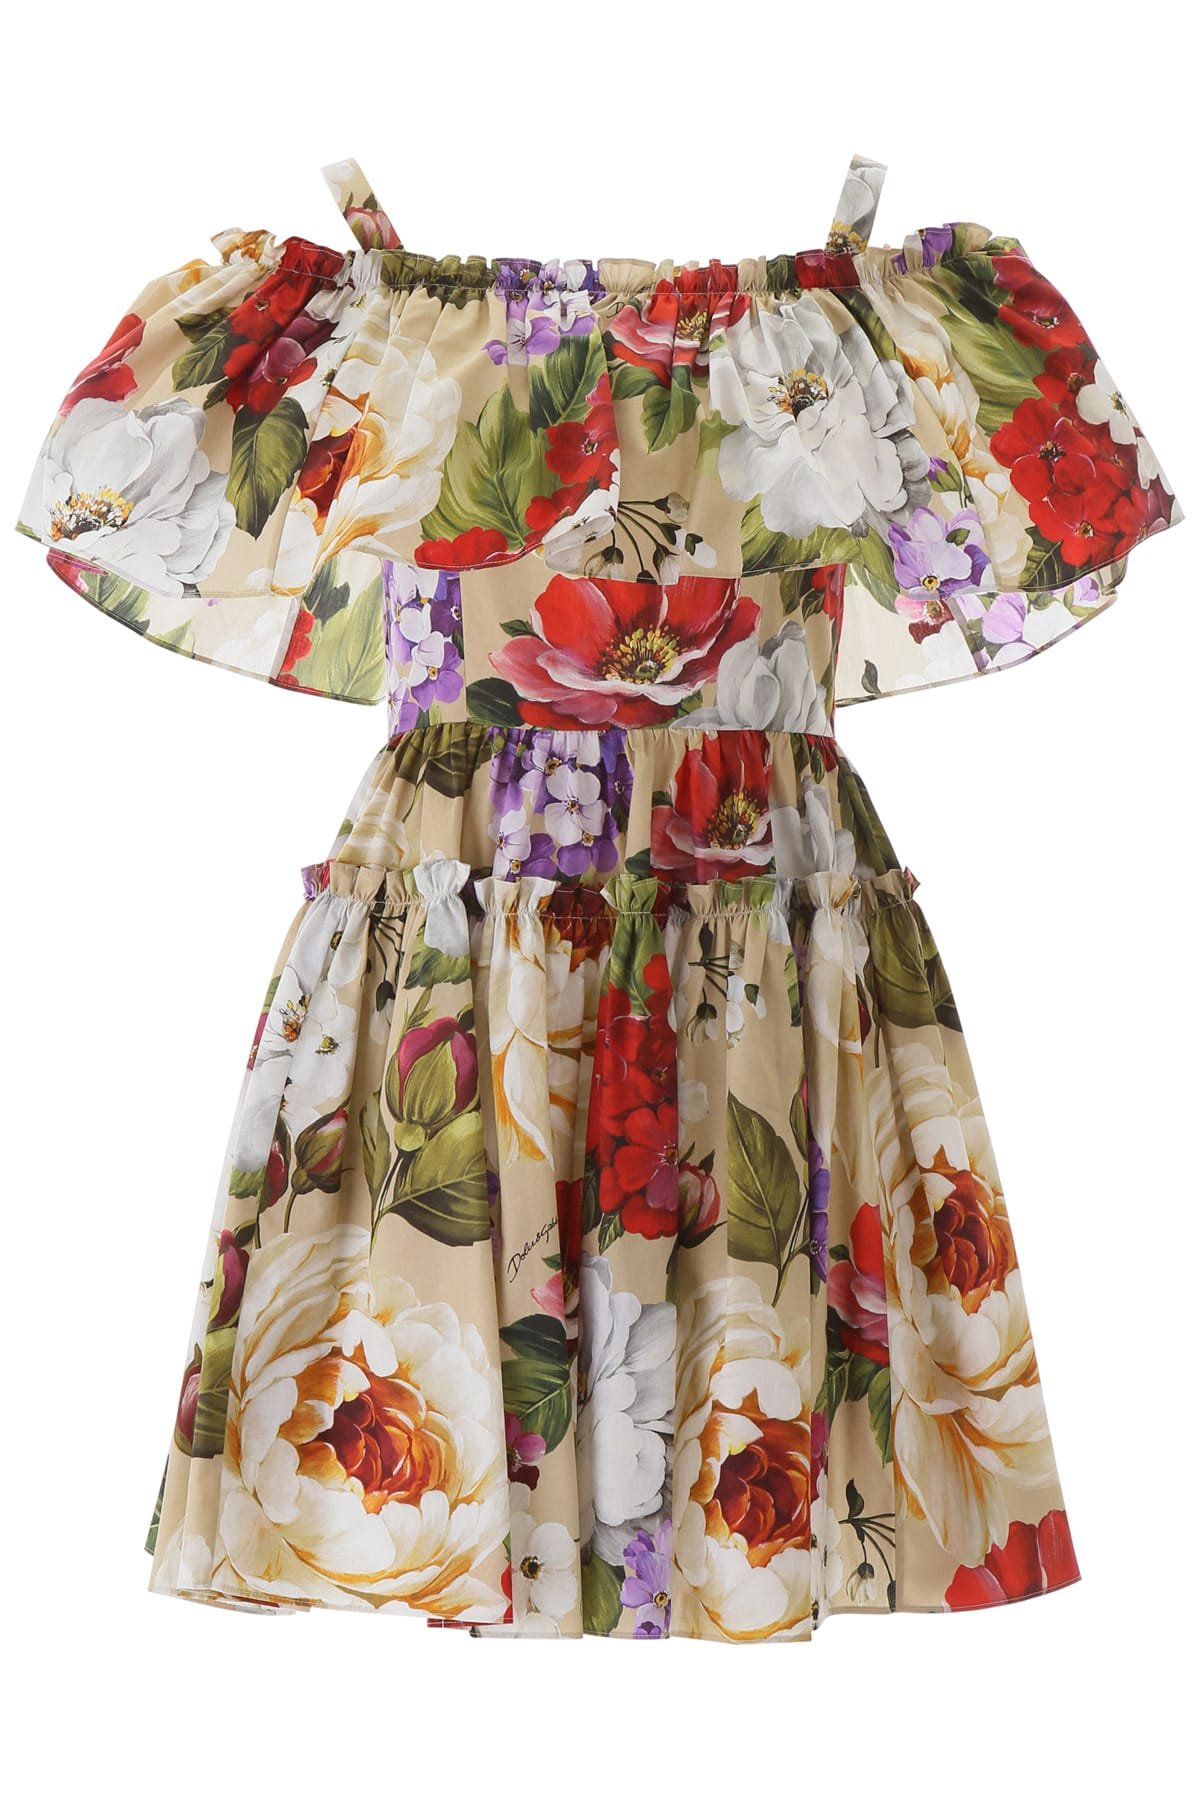 Buy Dolce & Gabbana Floral Print Short Dress online, shop Dolce & Gabbana with free shipping